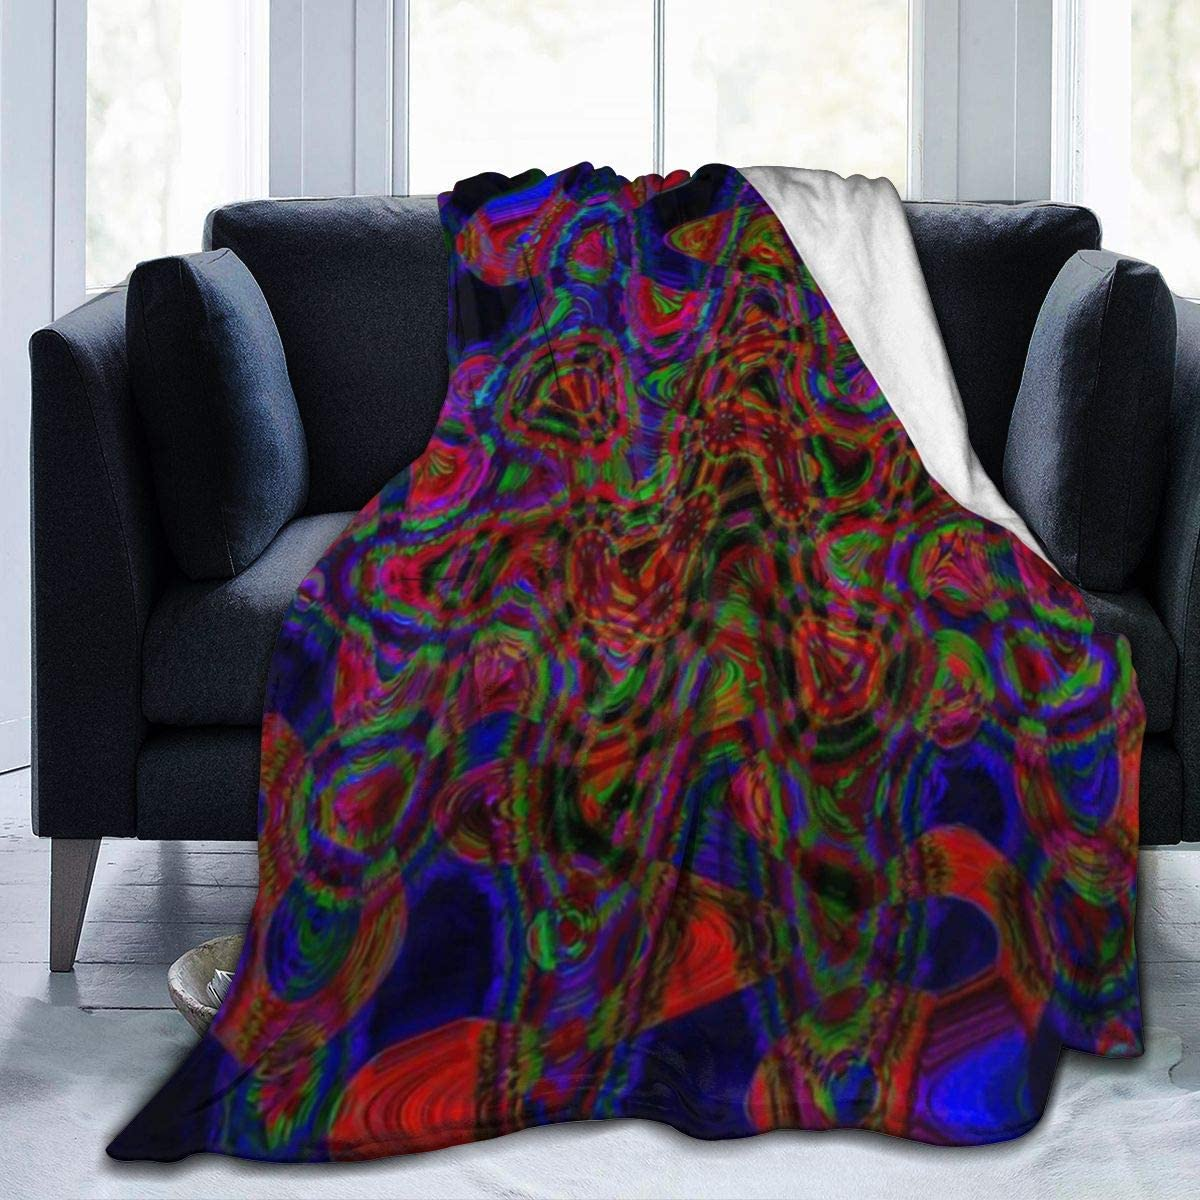 Amazon Com Flannel Fleece Novelty Throw Blanket Psychedelic Abstract Shape Amaze Neon Colors Pattern Blankets For Winter Farmhouse Wedding Gift Air Conditioning Blanket And Comfy Easy Care 50 X40 Home Kitchen